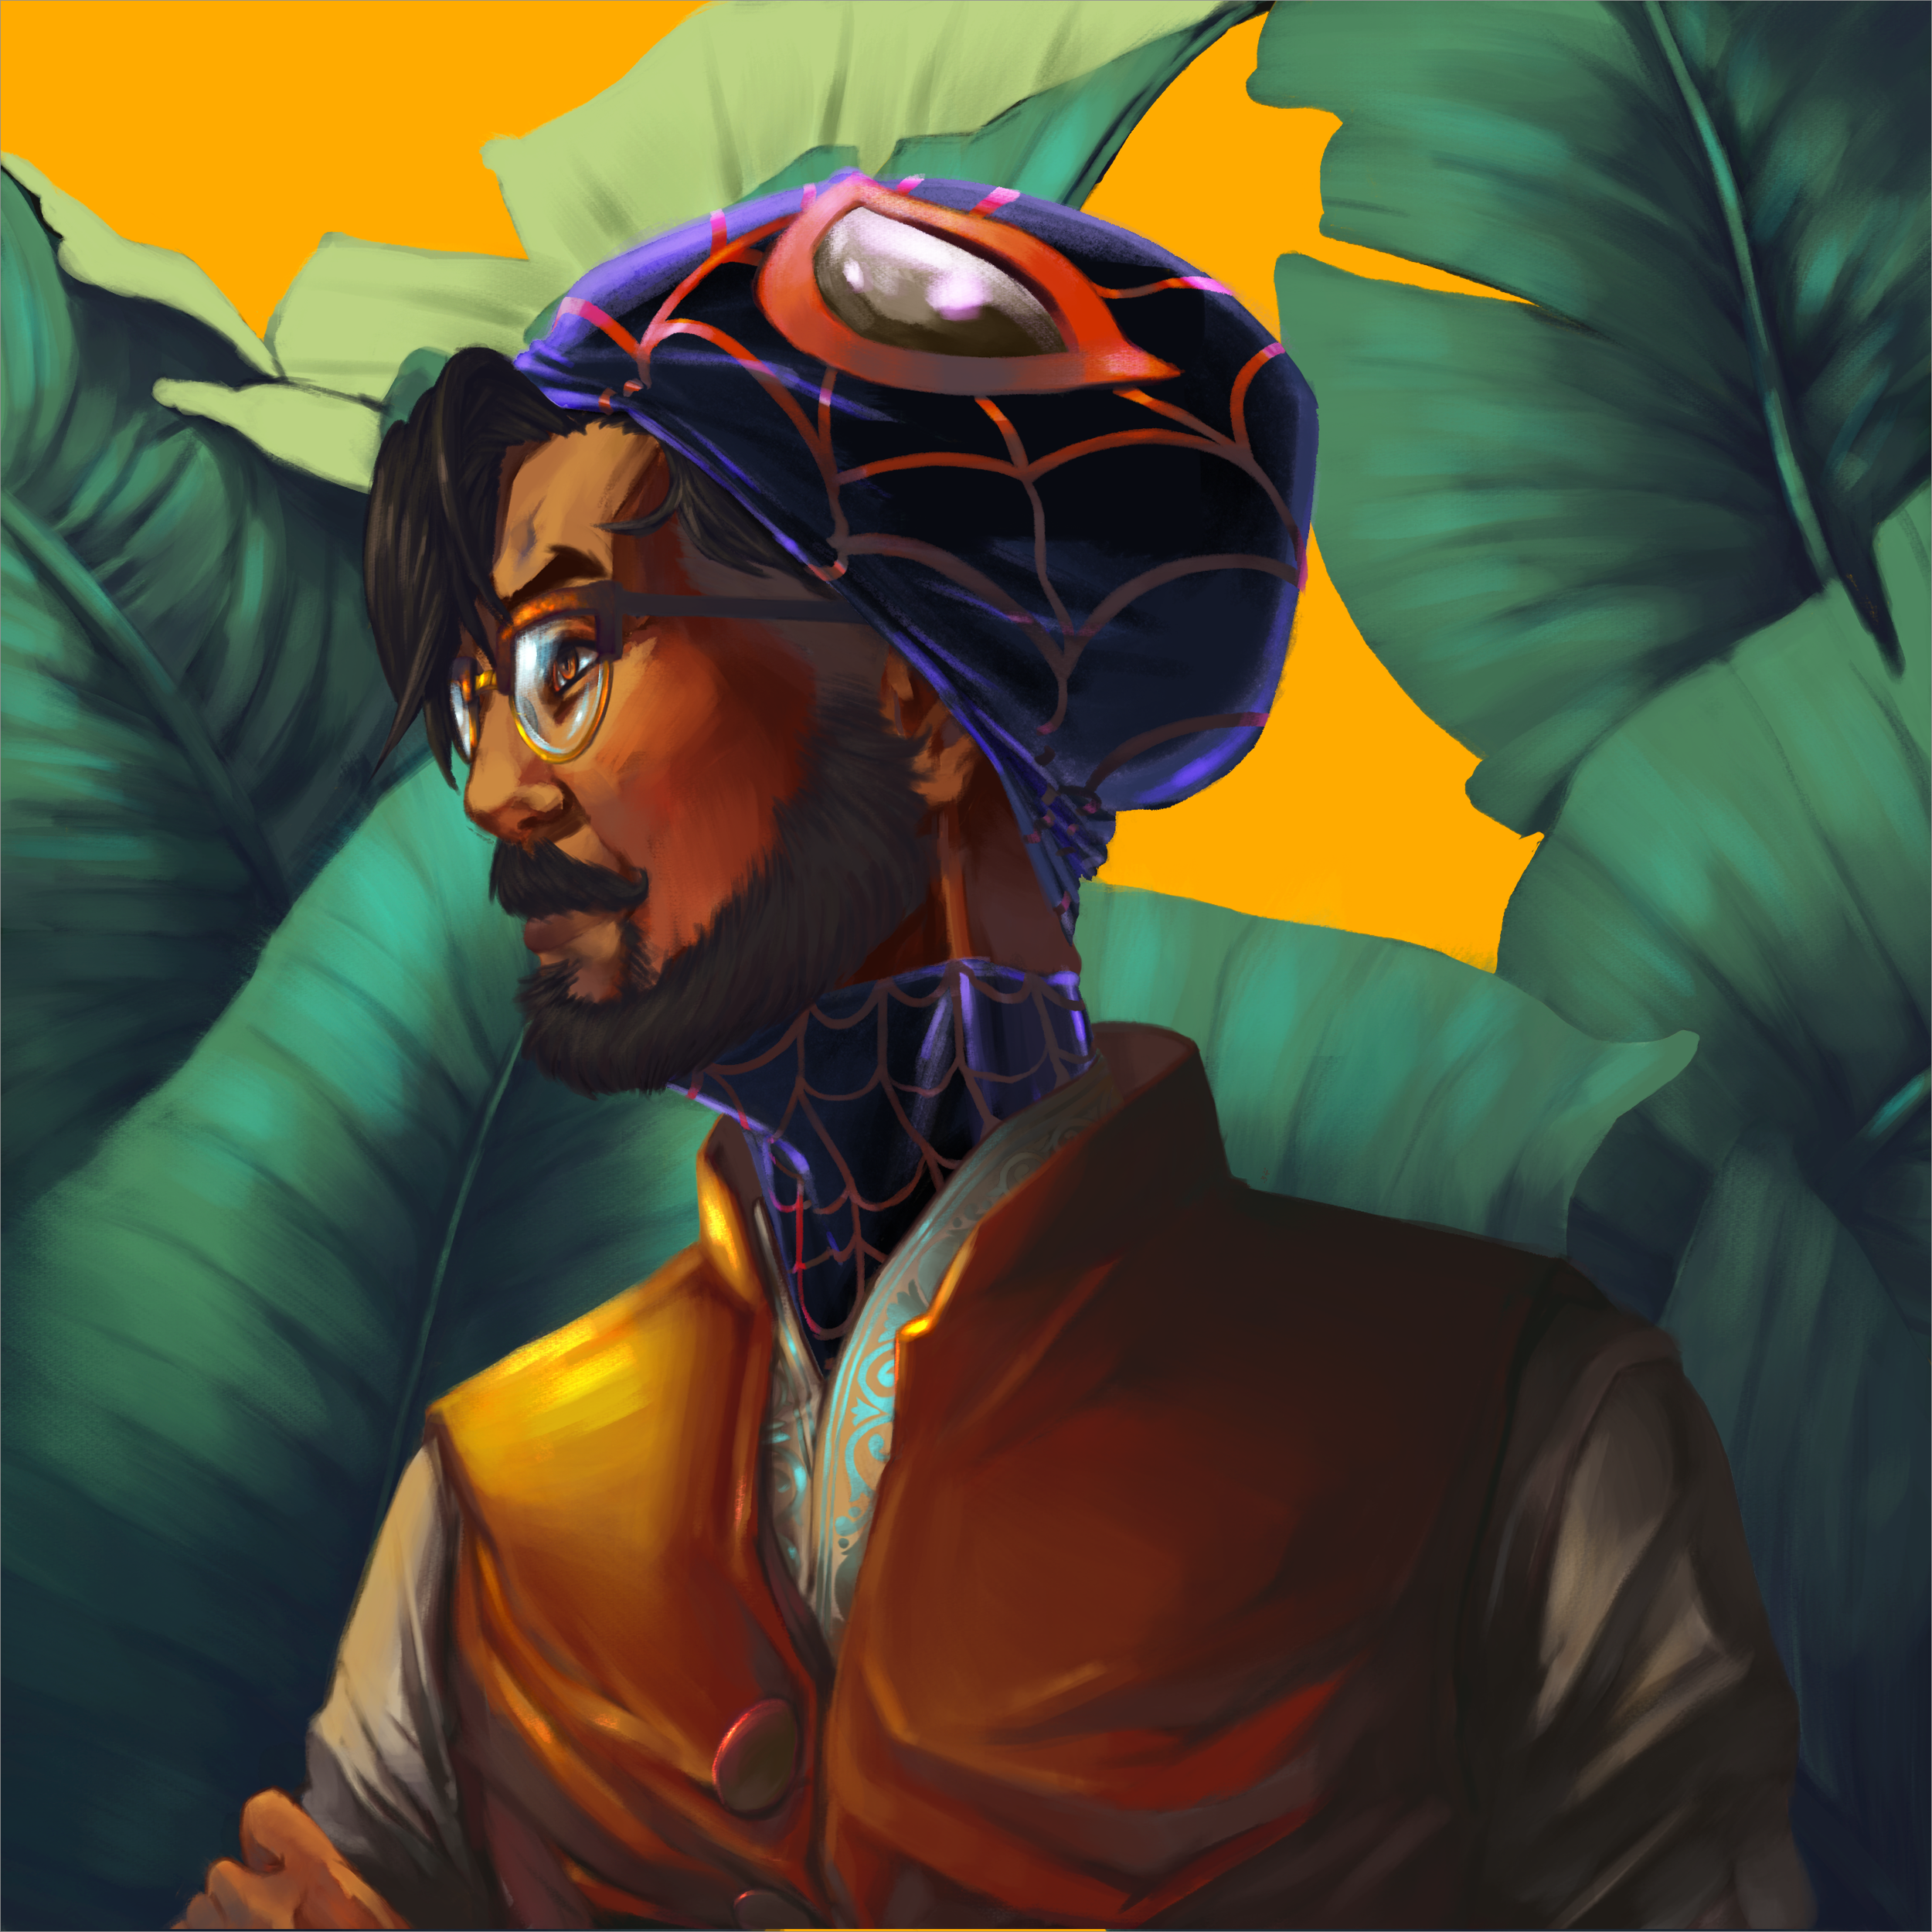 Character Bio - Name: Rohan AdelCountry: Canada, Oakville, ONHeight: Prefers not to disclose… tall in his own right..About:Rohan Adel is an Illustrator and Concept Artist who believes concept, narrative and character drives projects forward to the next level. Rohan graduated from the Ontario College of Art and Design University (OCAD U) in 2018 and holds a Bachelors in Design (BDes). In his free time he'll be reading manga; analyzing movies, anime, or TV; exploring video games and interacting with pop culture through art to hone and sharpen his skills!Special Abilities:PhotoshopIllustratorAfter EffectsInDesignSkills:Concept ArtCharacter and Environment DesignMatte PaintingColour GradingAnimationIllustrationTraditional ArtDigital ArtAchievements and Awards: American Illustration 38 - The Archive 2018 Special Moves:YOU! What are your needs? What do you need for your project? Lets makes something special together! (Hold both Shoulder Buttons to trigger Special)Work Ethic: I pride myself in my work ethic, and will work hard to research, draft, and execute the project based on your needs and requirements, whether that be for a show, movie, game, or various other media! (Left, Right, Left, Up, Down, Hold Every Button Together)You can contact Rohan with any inquiries through his form page or at: adelrohan@gmail.com